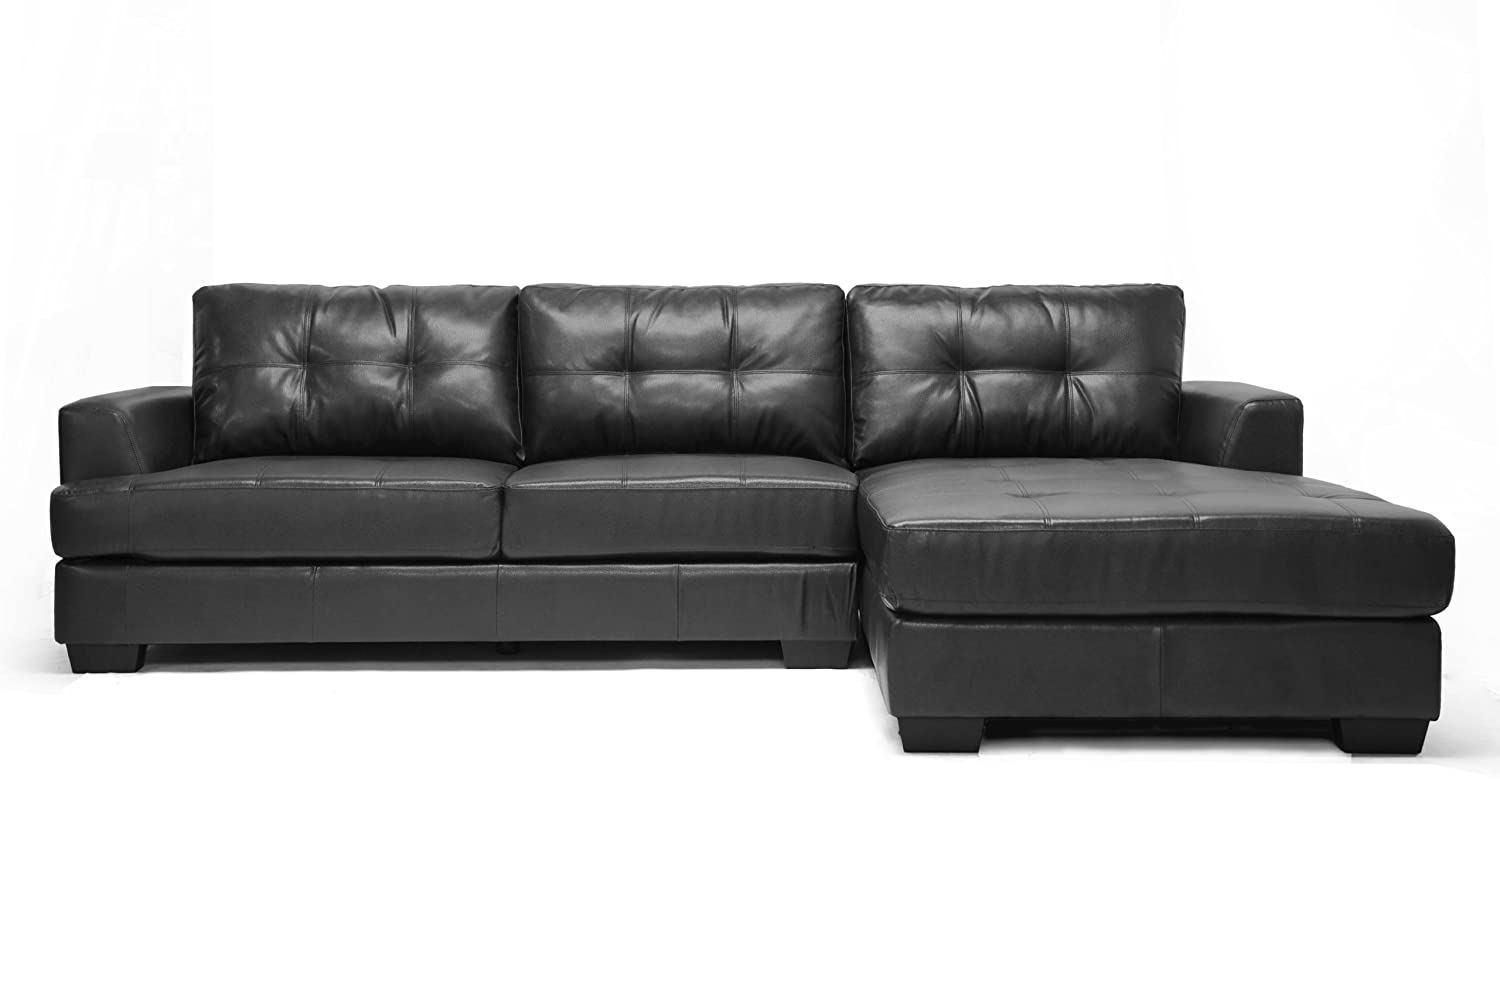 Amazoncom Baxton Studio Dobson Leather Modern Sectional Sofa